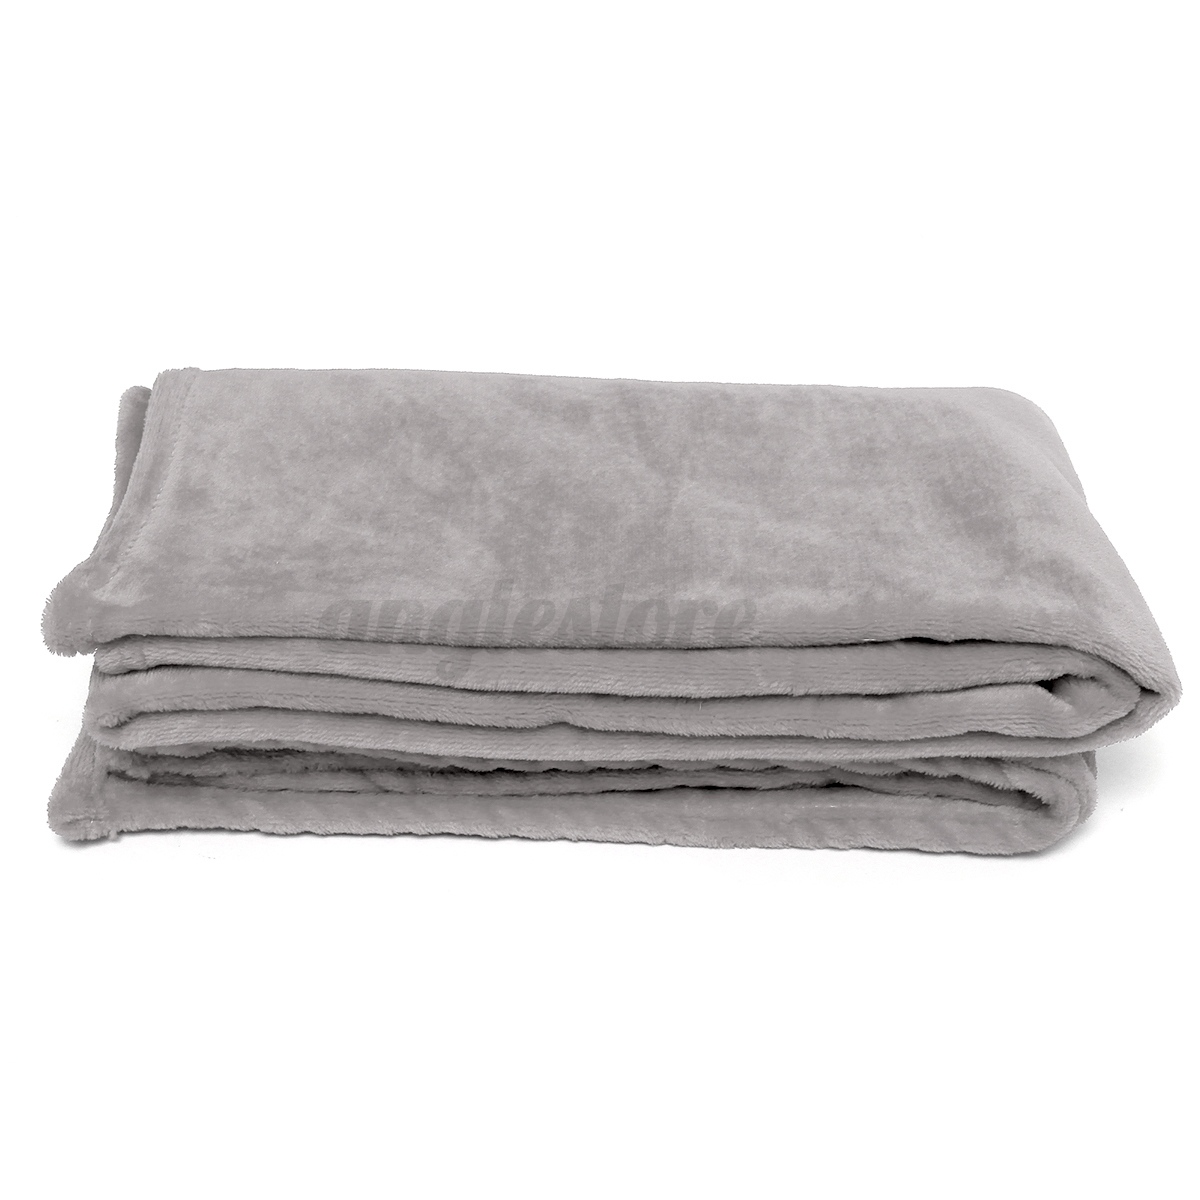 New soft solid warm micro plush flannel fleece blanket throw rug sofa bedding ebay Throw blankets for sofa